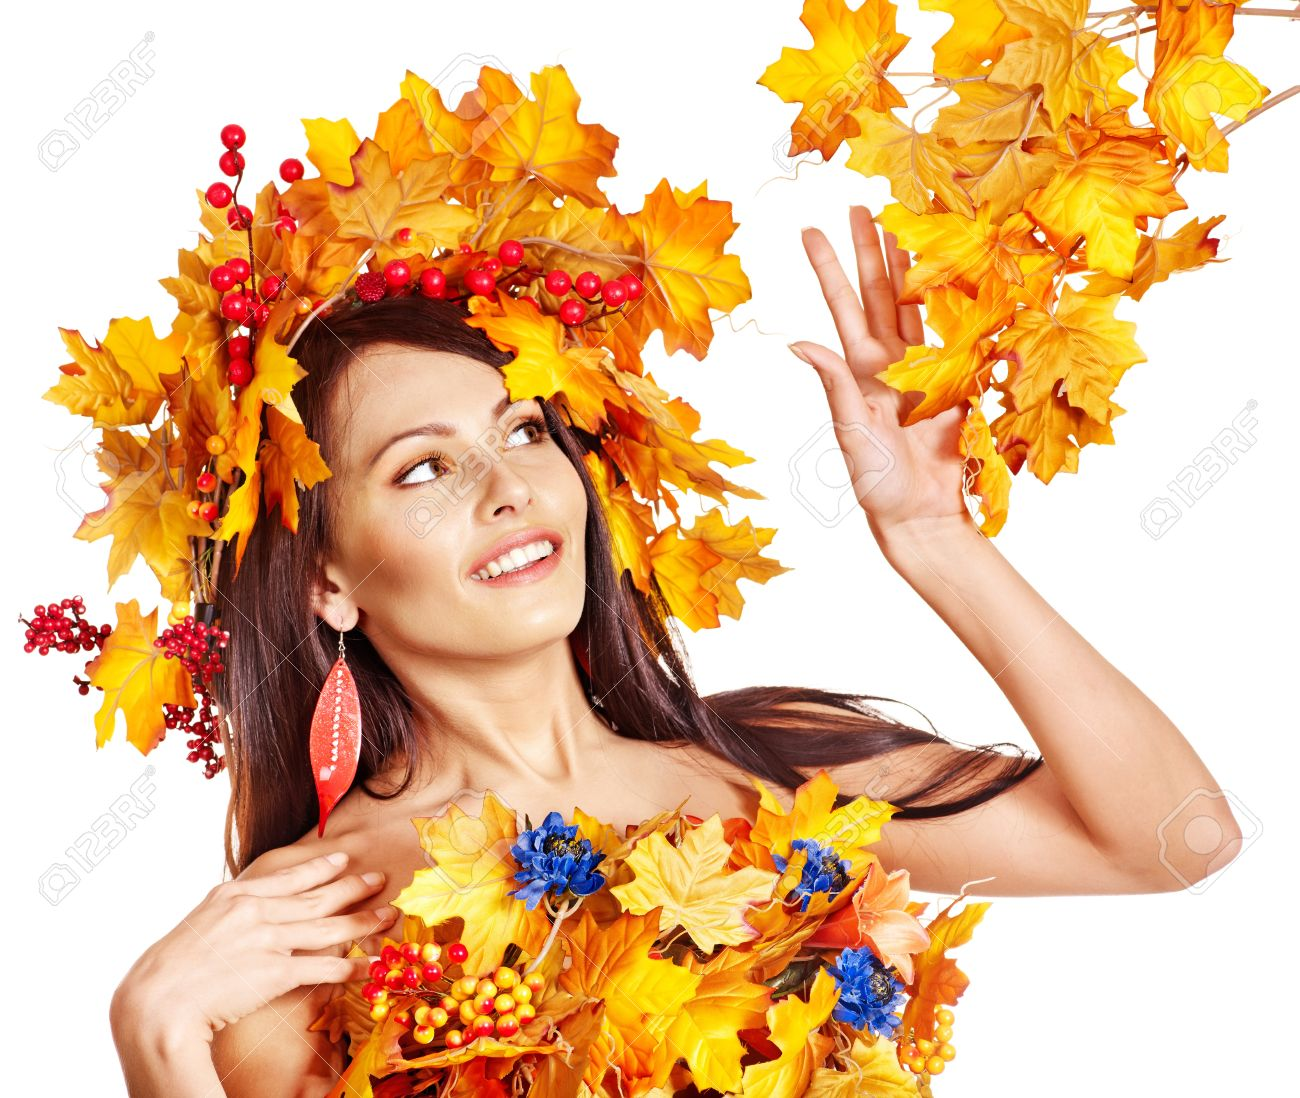 Girl with wreath of autumn leaves on the head. Art photo. Stock Photo - 15635230